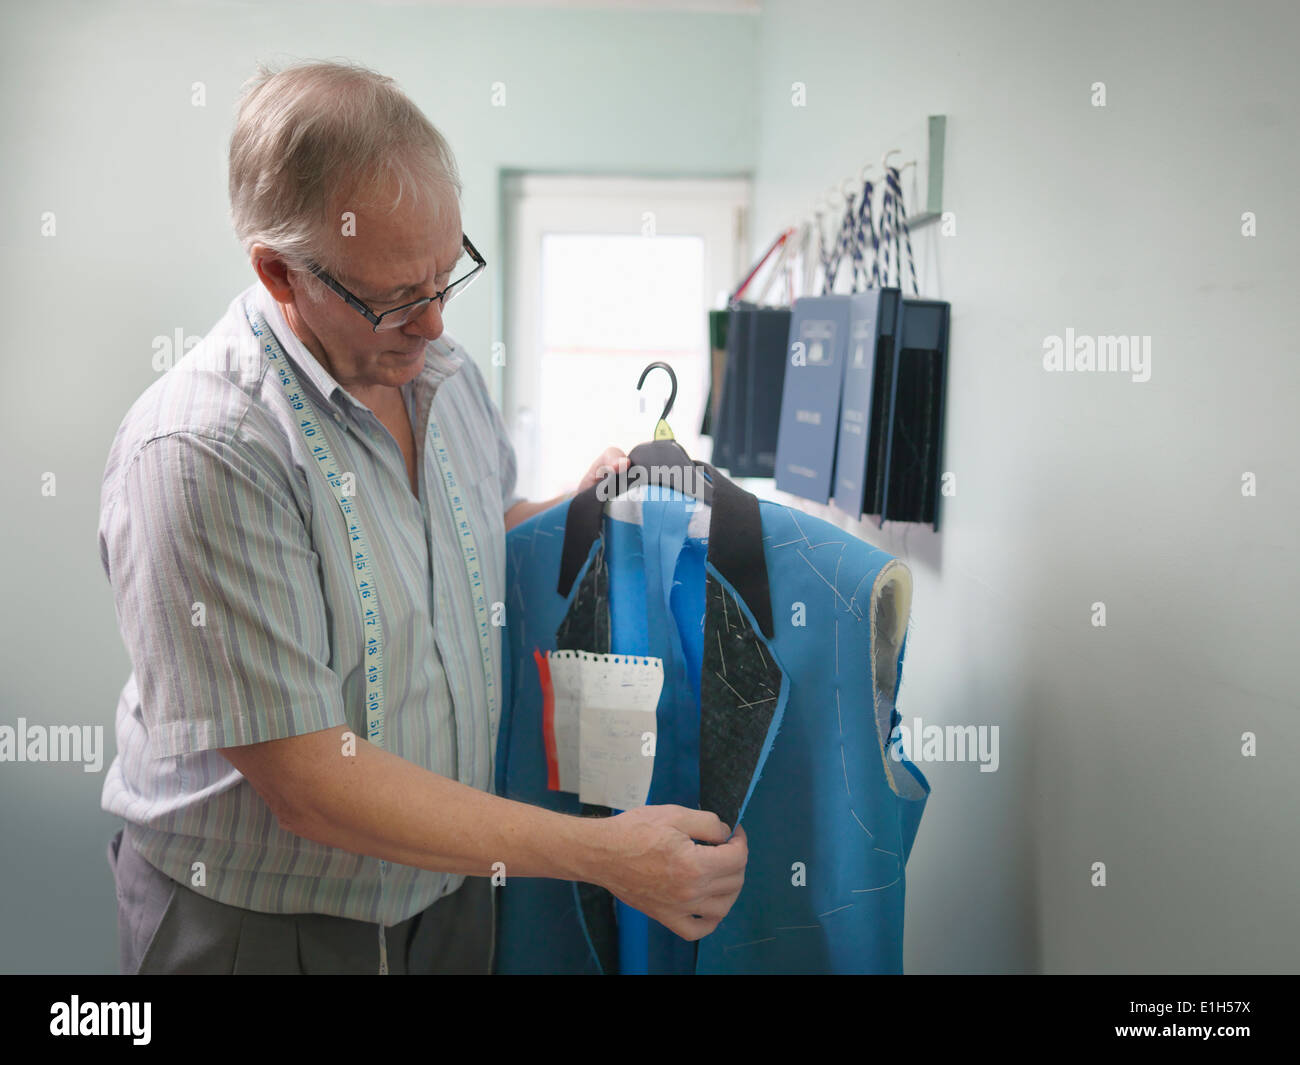 Tailor inspecting clothing in tailoring factory - Stock Image